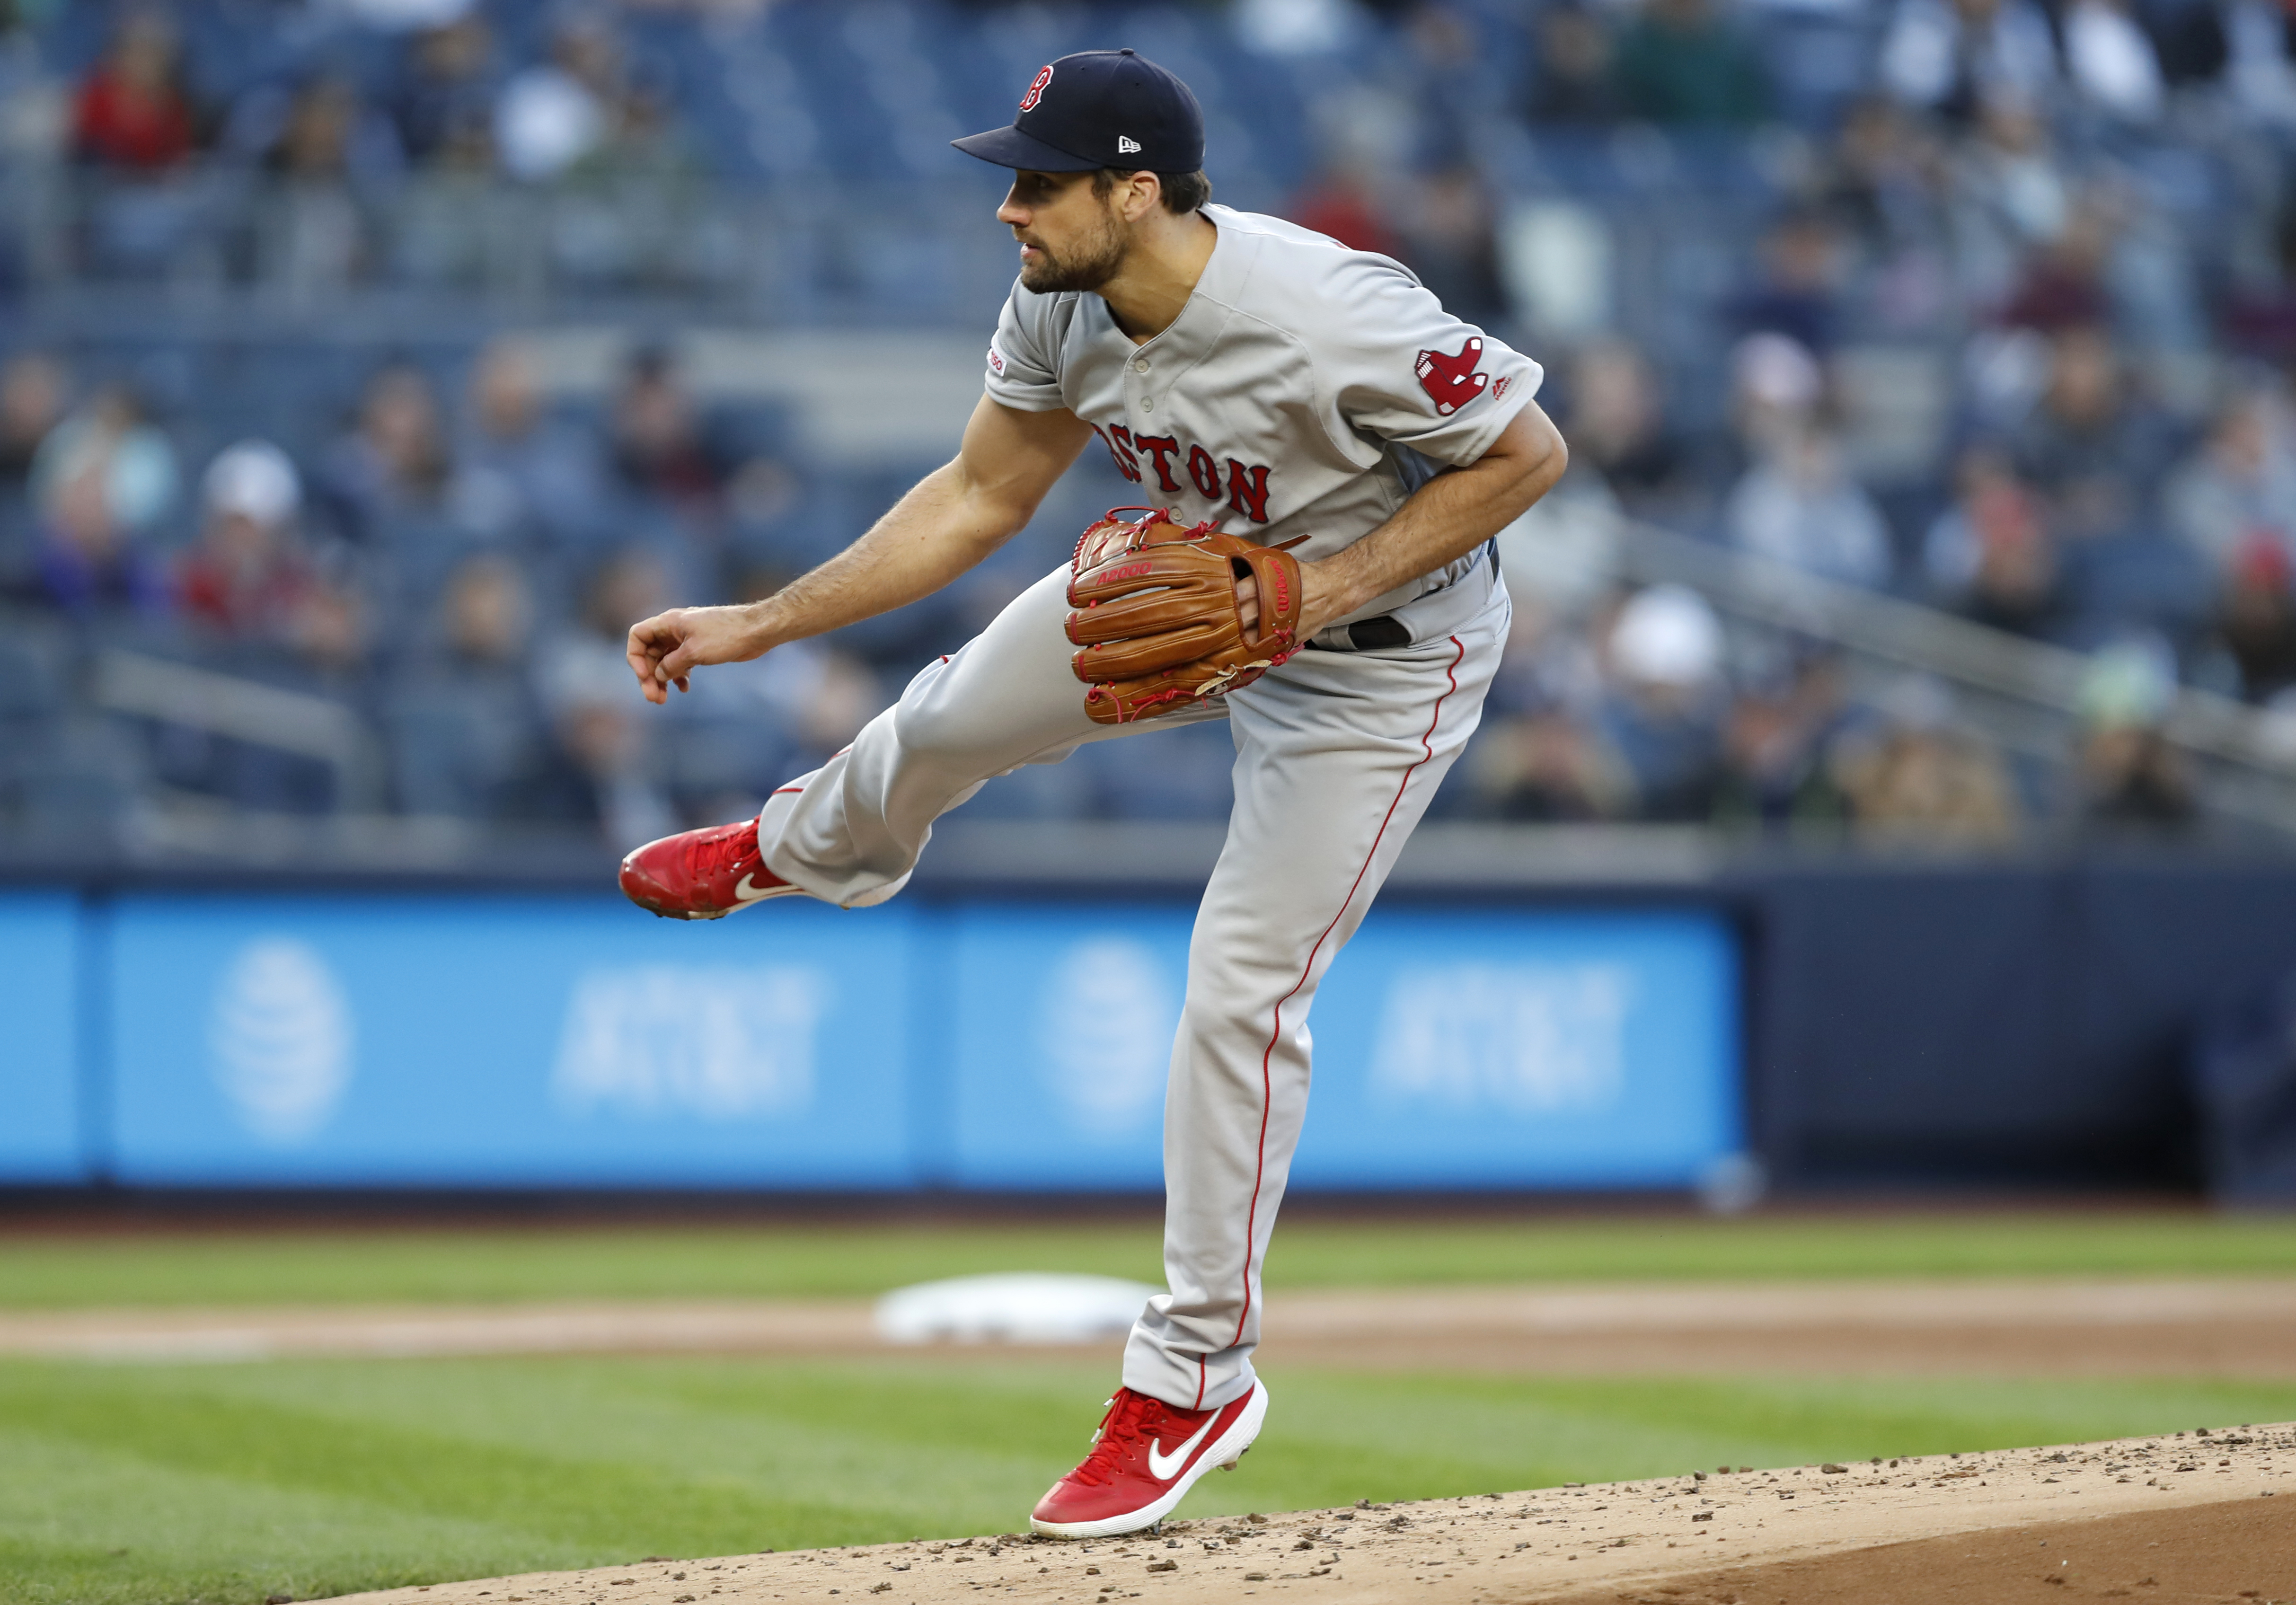 Red Sox' plan for Nate Eovaldi — use in 'high-leverage' spots